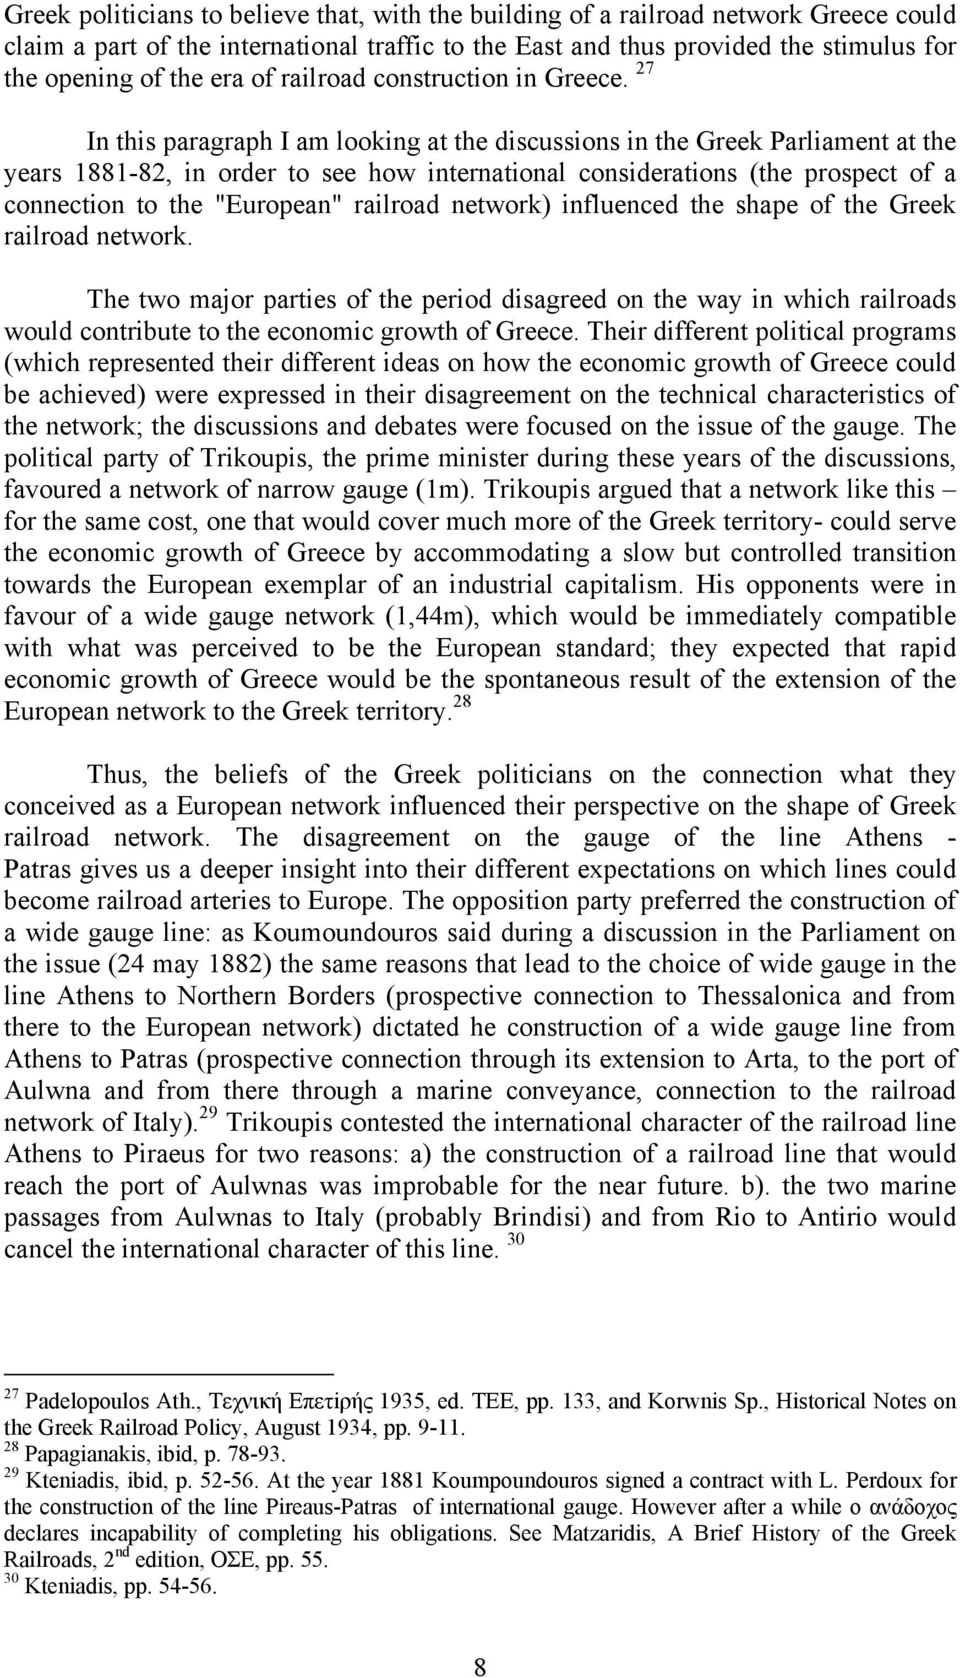 "27 In this paragraph I am looking at the discussions in the Greek Parliament at the years 1881-82, in order to see how international considerations (the prospect of a connection to the ""European"""